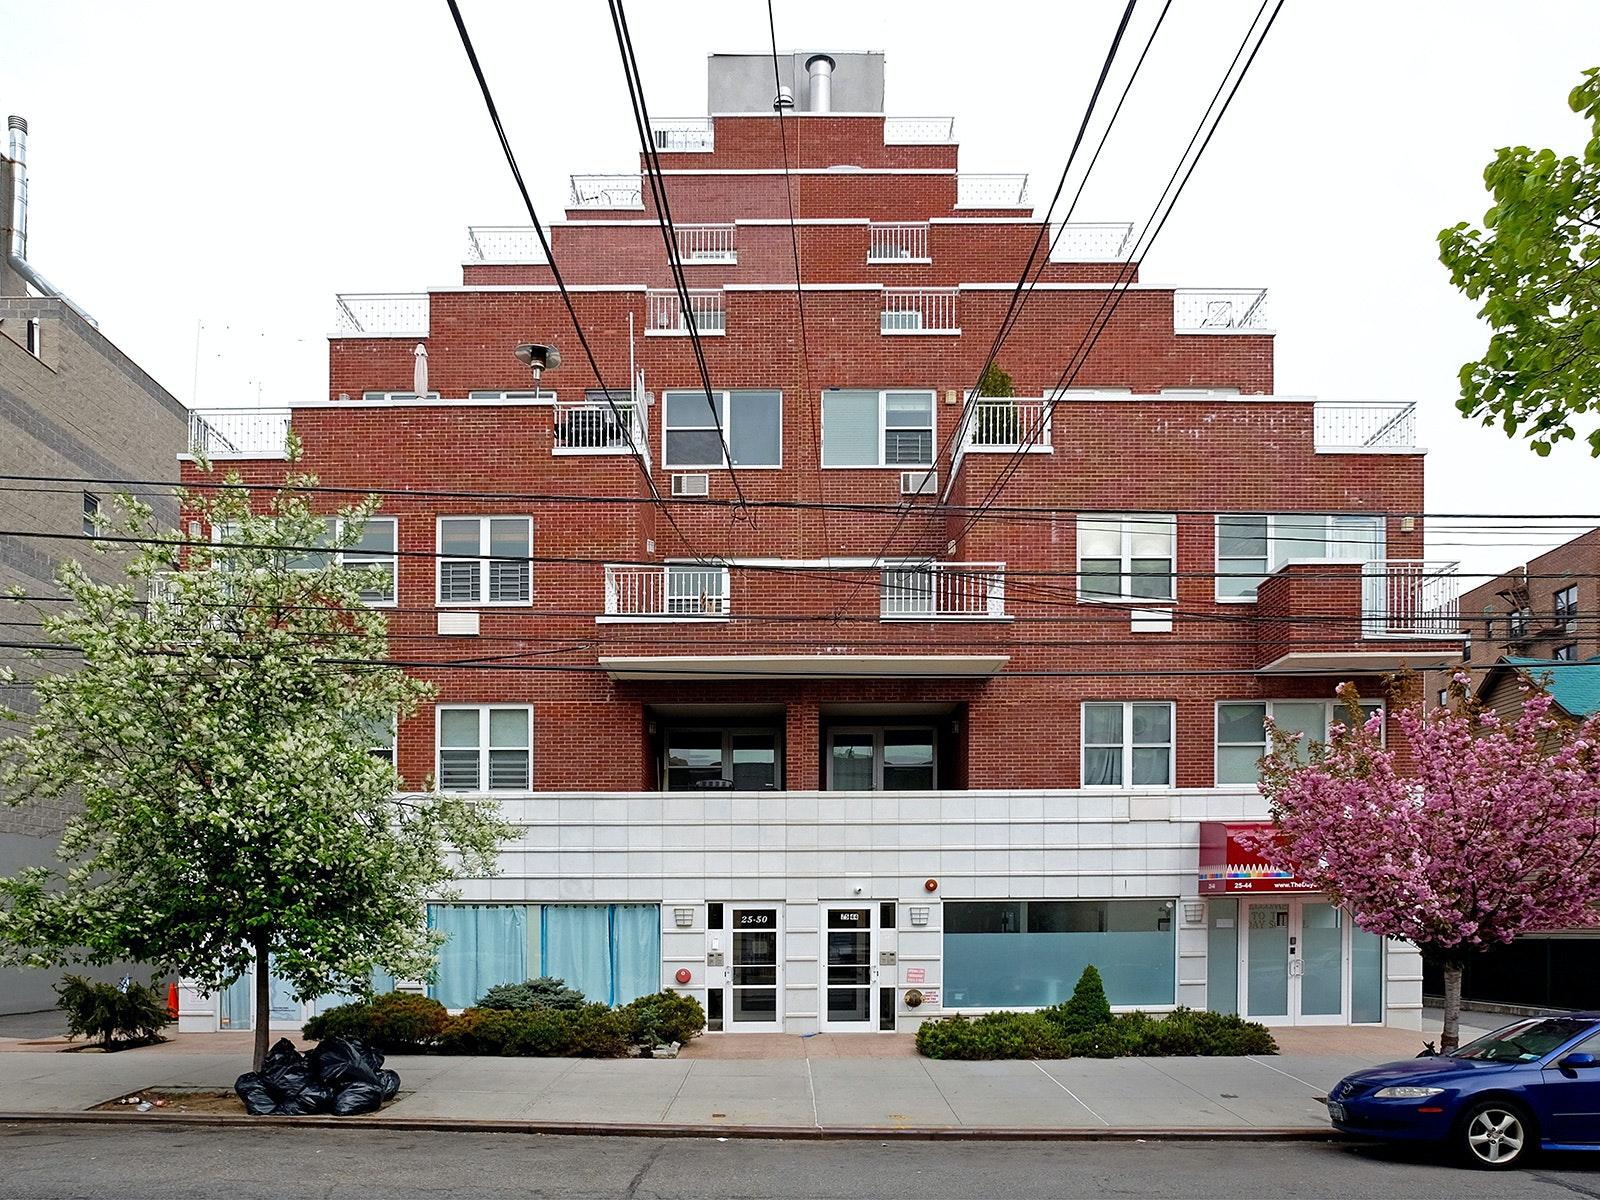 Wedding Cake Condo. Astoria, NY. 2017. Photograph By Rafael Herrin Ferri.  Image Courtesy Of The Architectural League Of New York.